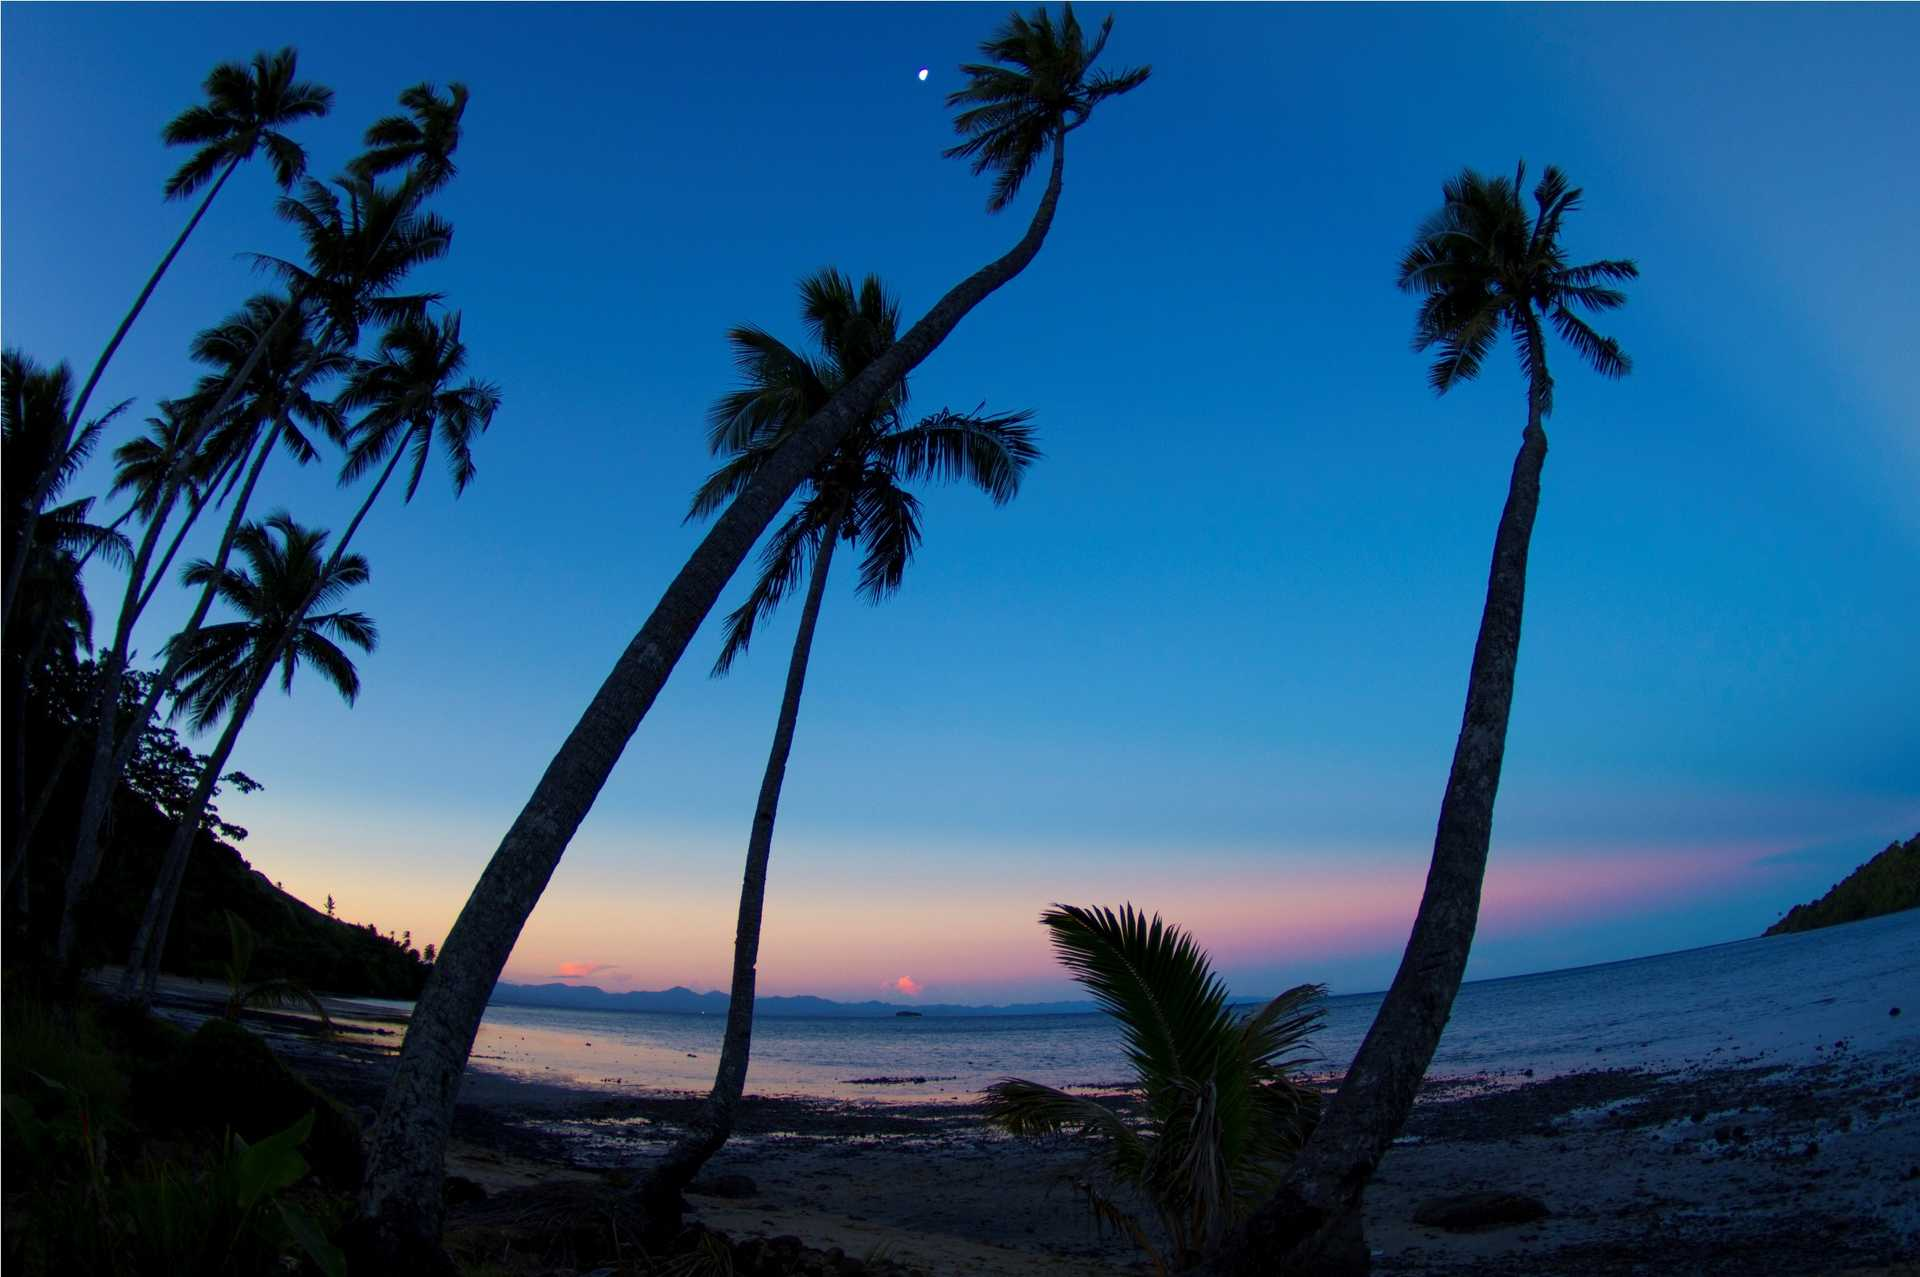 Fiji palm trees at sunset - beautiful blues and pinks